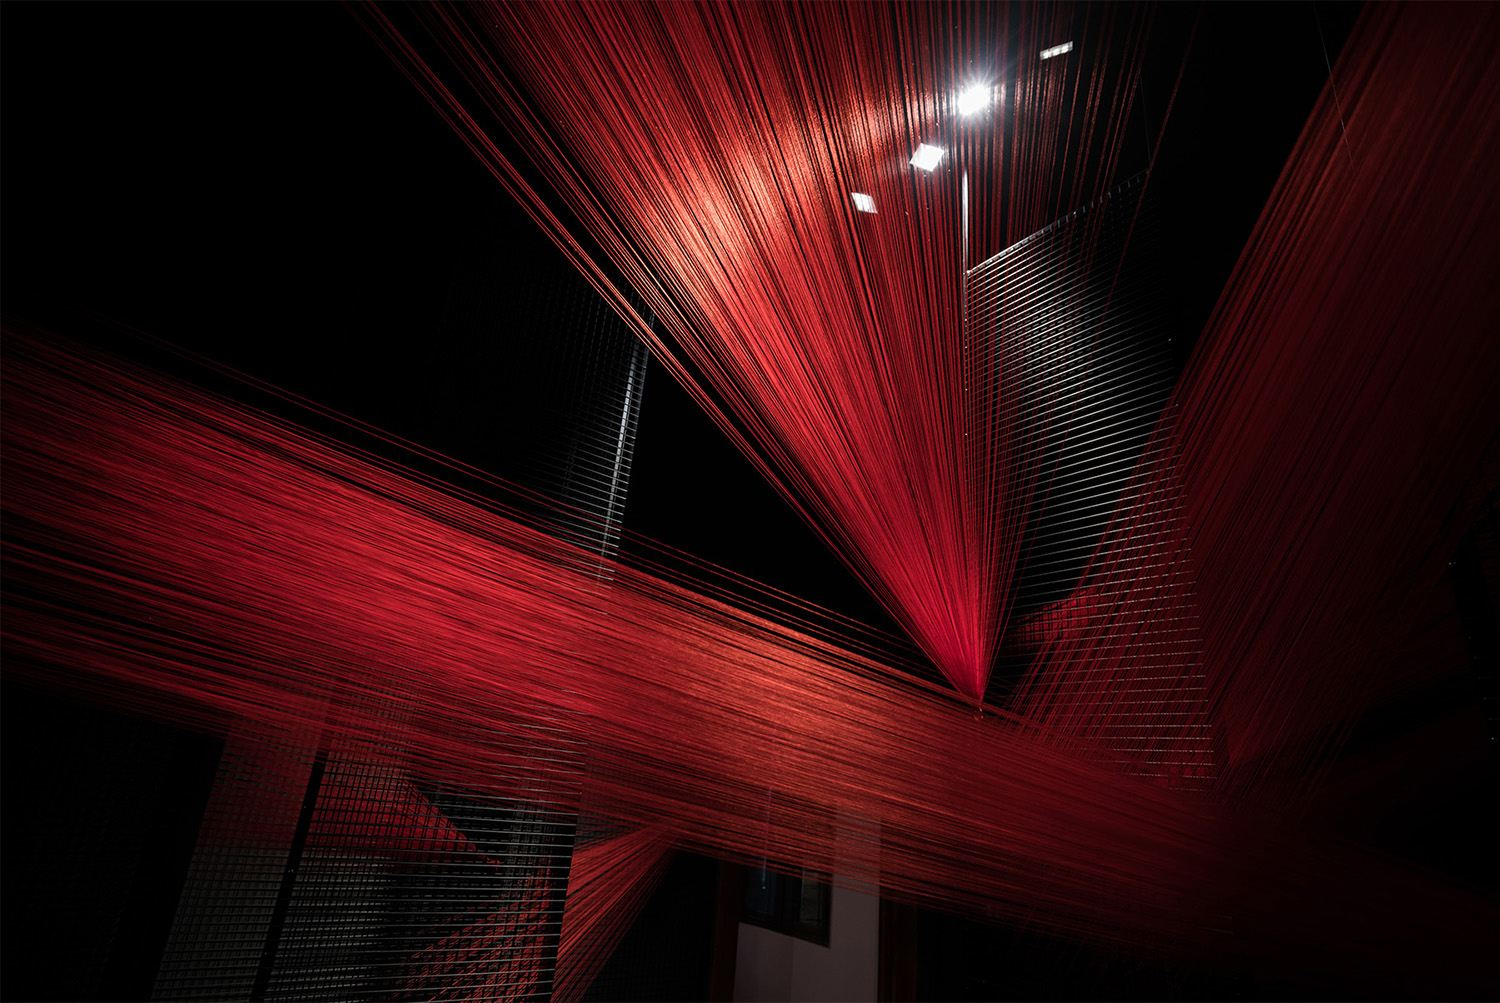 The Fire of Holy Spirit Art Exhibition by Yi Chen and Muchen Zhang, red strings